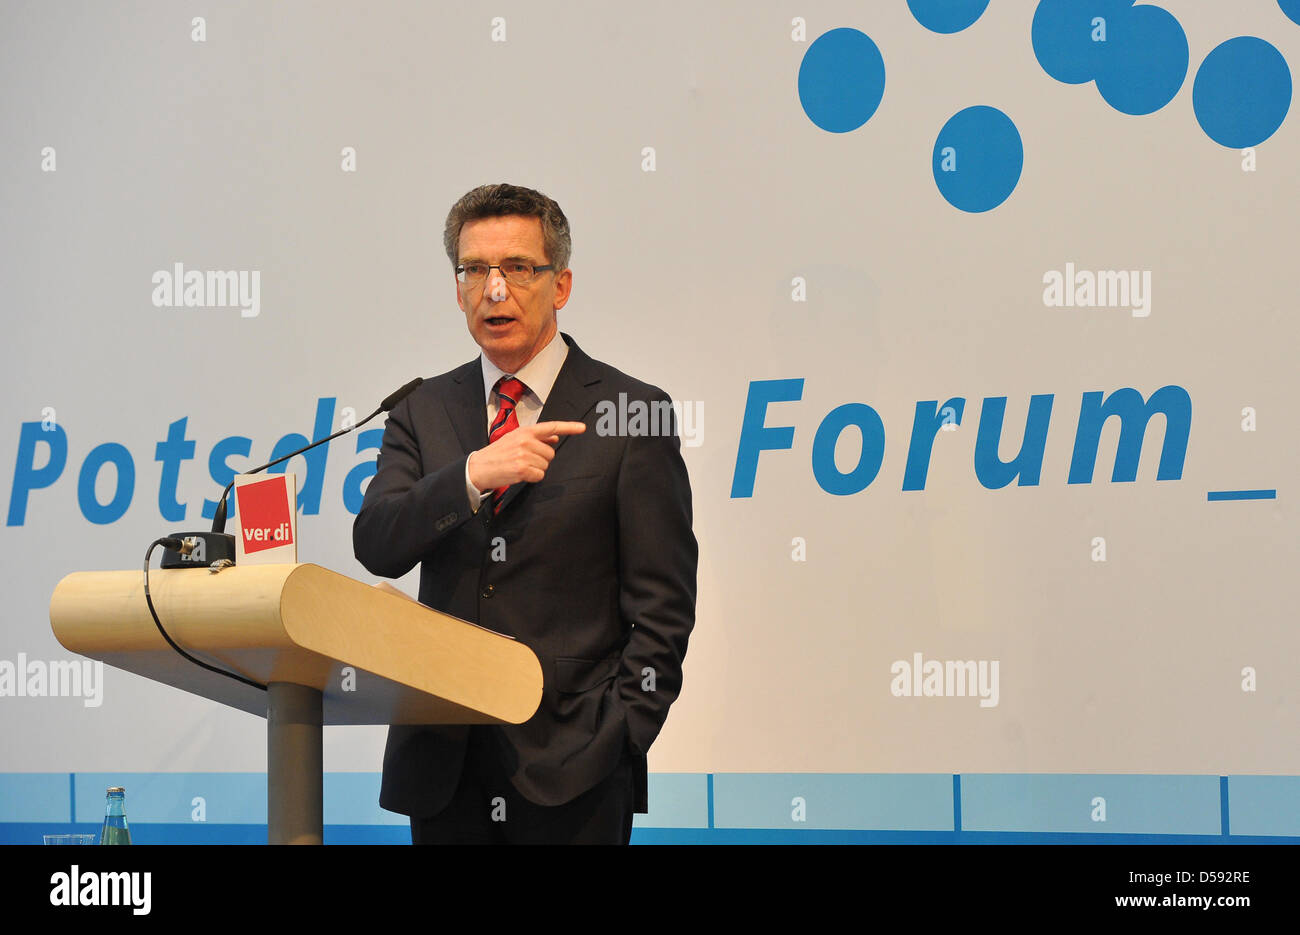 German Interiour Minister Thomas de Maizière speaks at the 8th Potsdam Forum for Executives in the public services - Stock Image